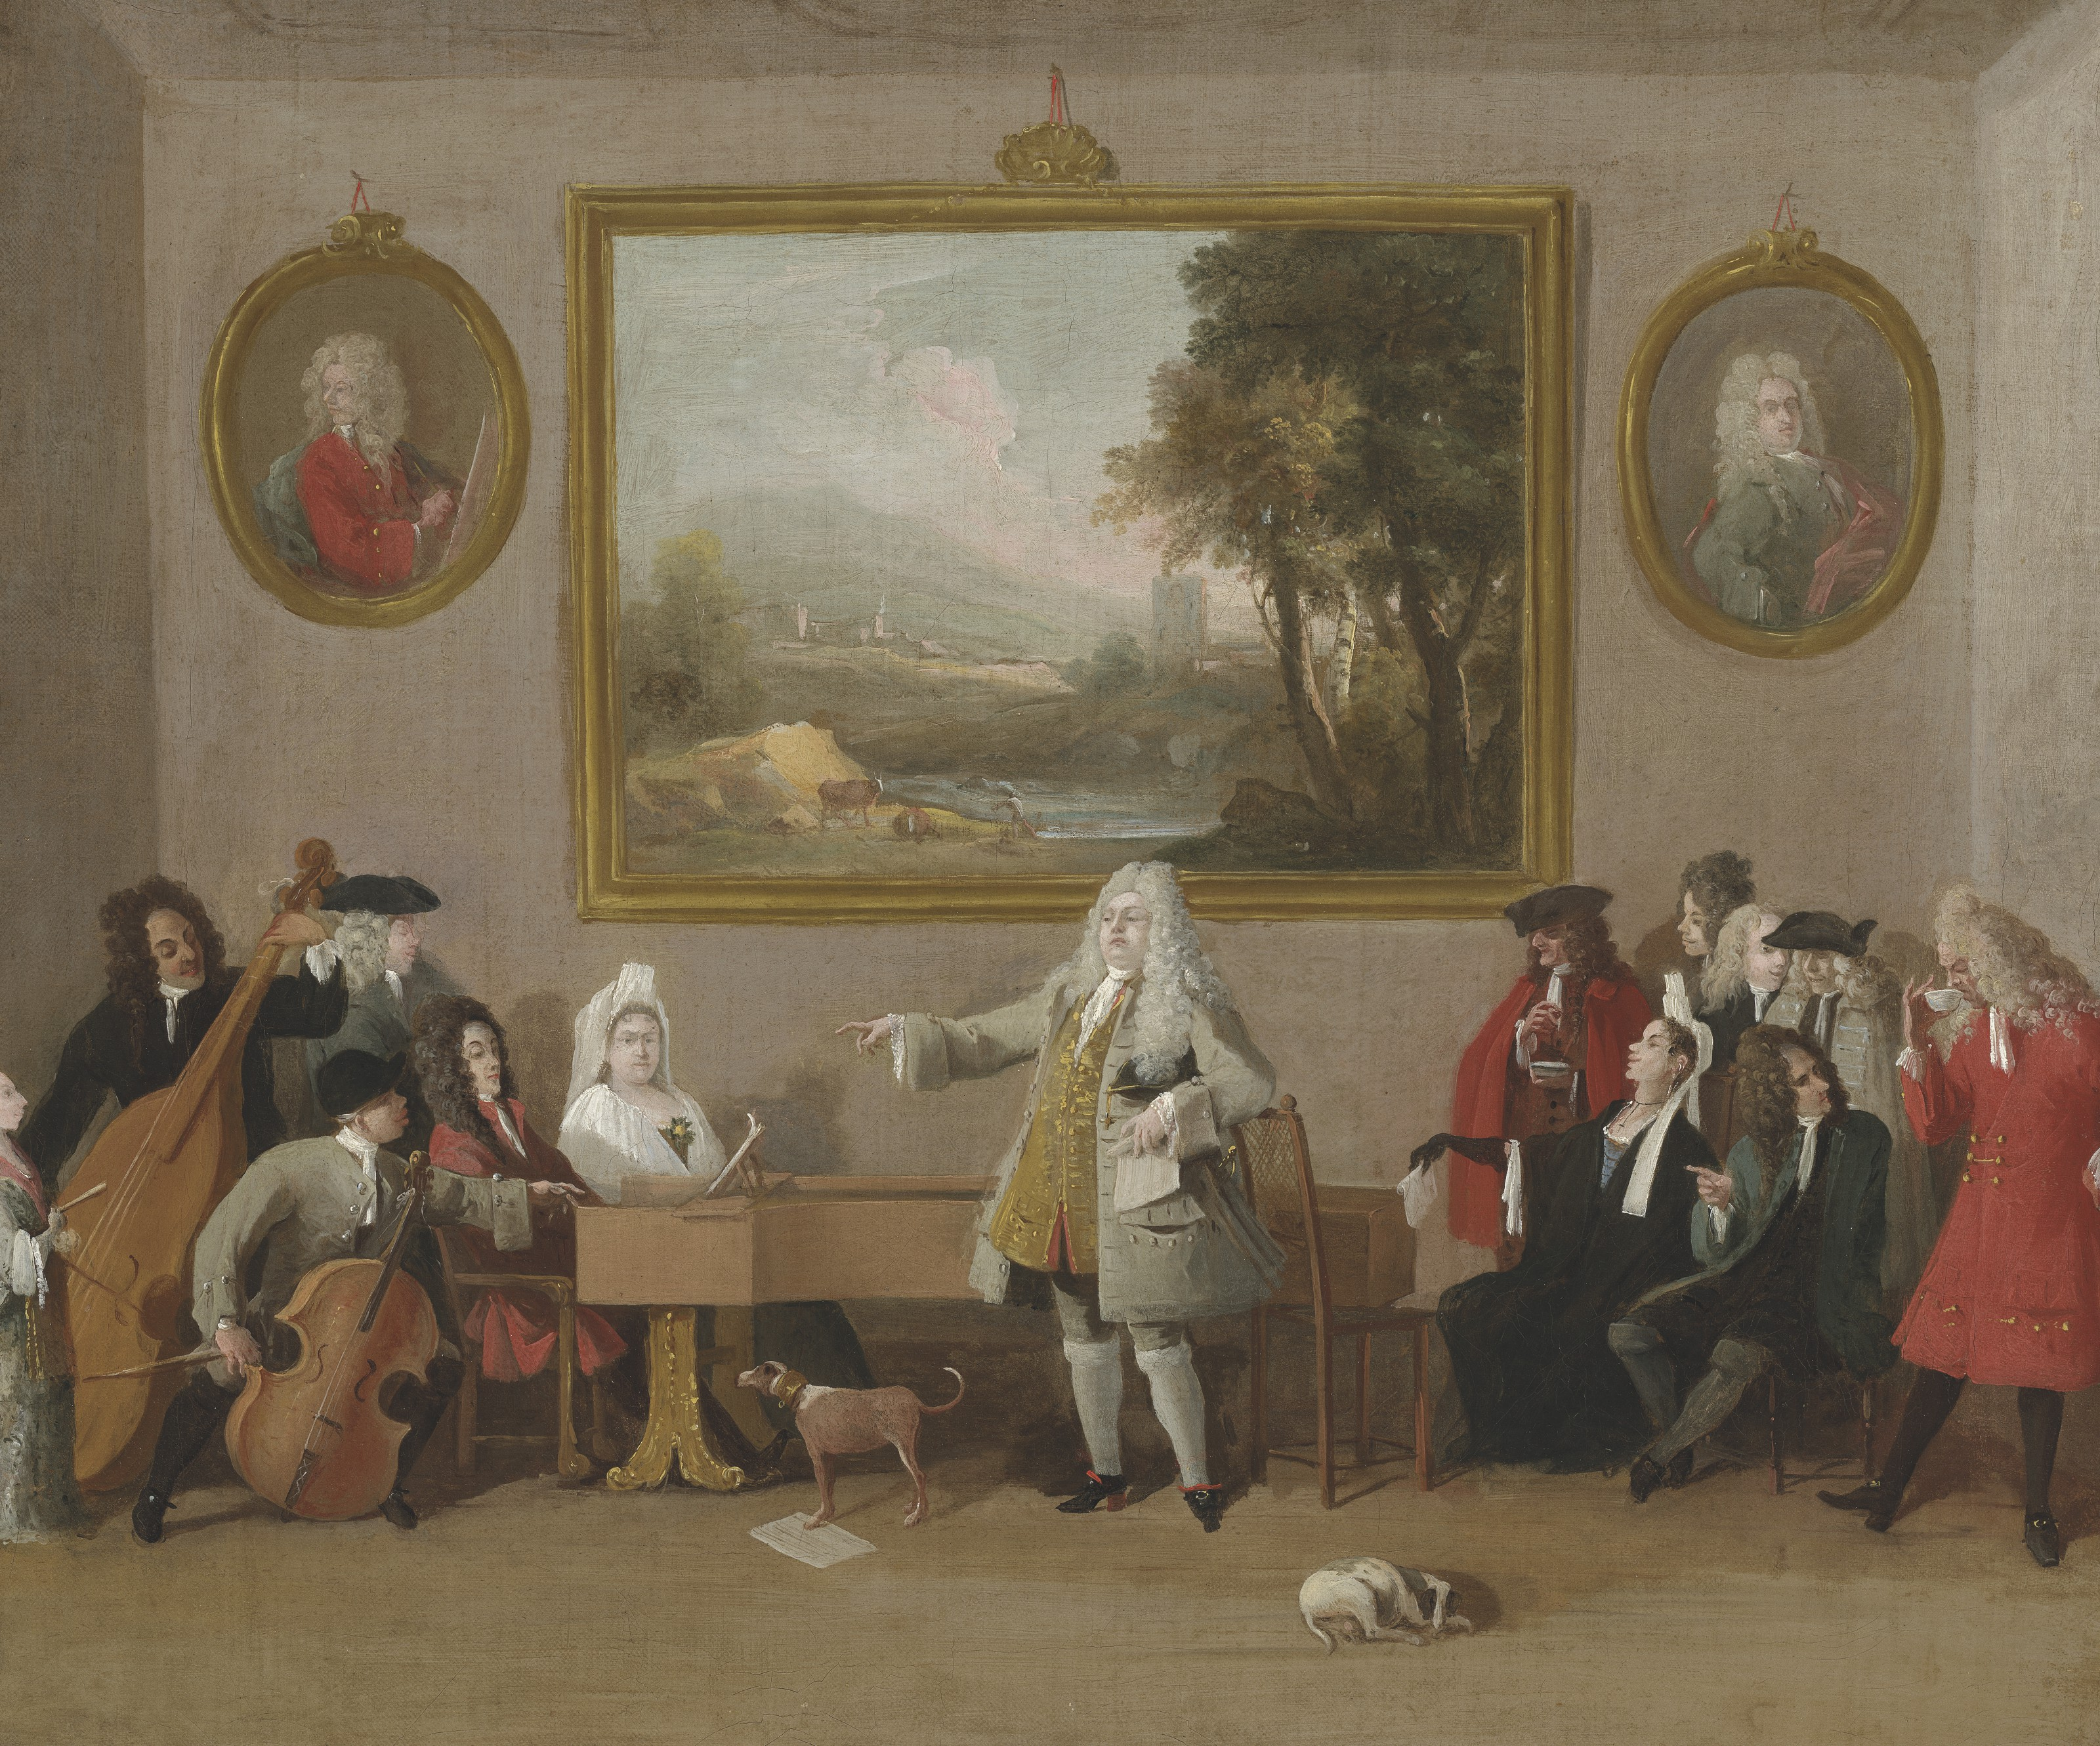 Marco Ricci (Belluno 1676-1730), An Opera Rehearsal, 1771. Oil on canvas. 18⅞ x 22½ in (48 x 57.1 cm). Estimate £400,000-600,000. Offered in Old Masters Evening Sale on 8 July 2021 at Christie's in London